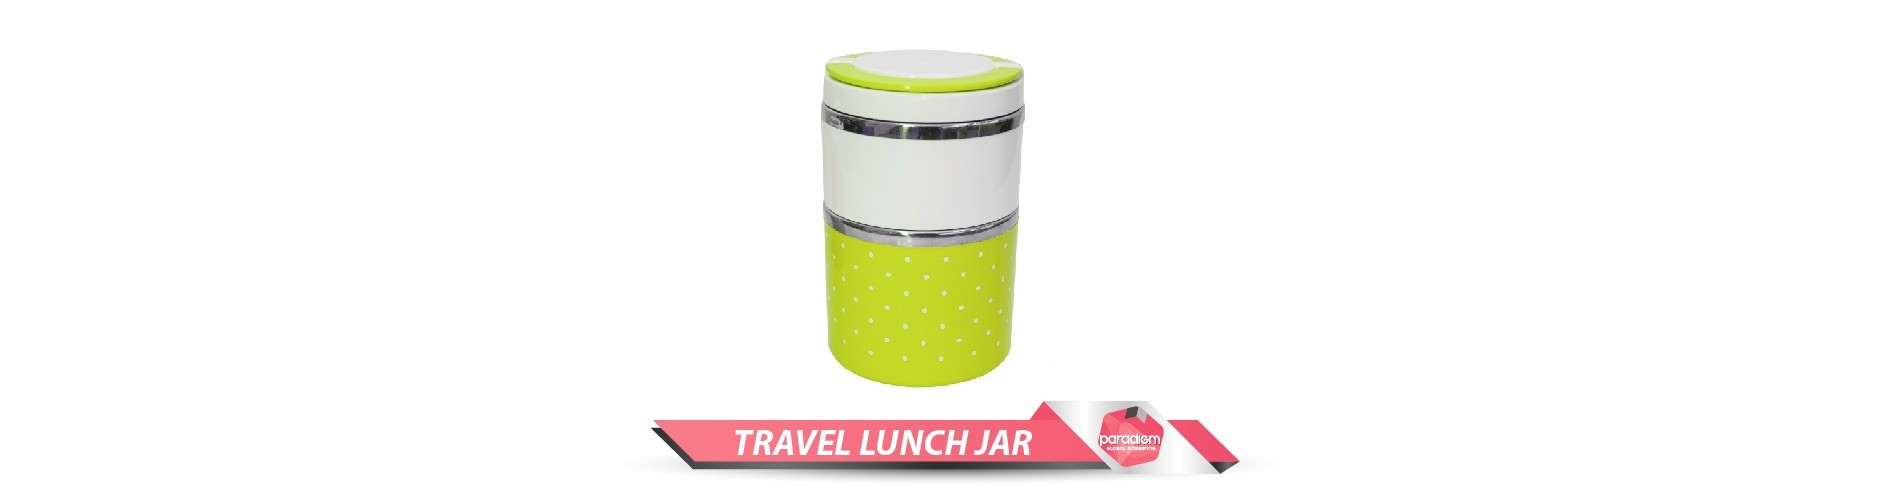 Travel Lunch Jar